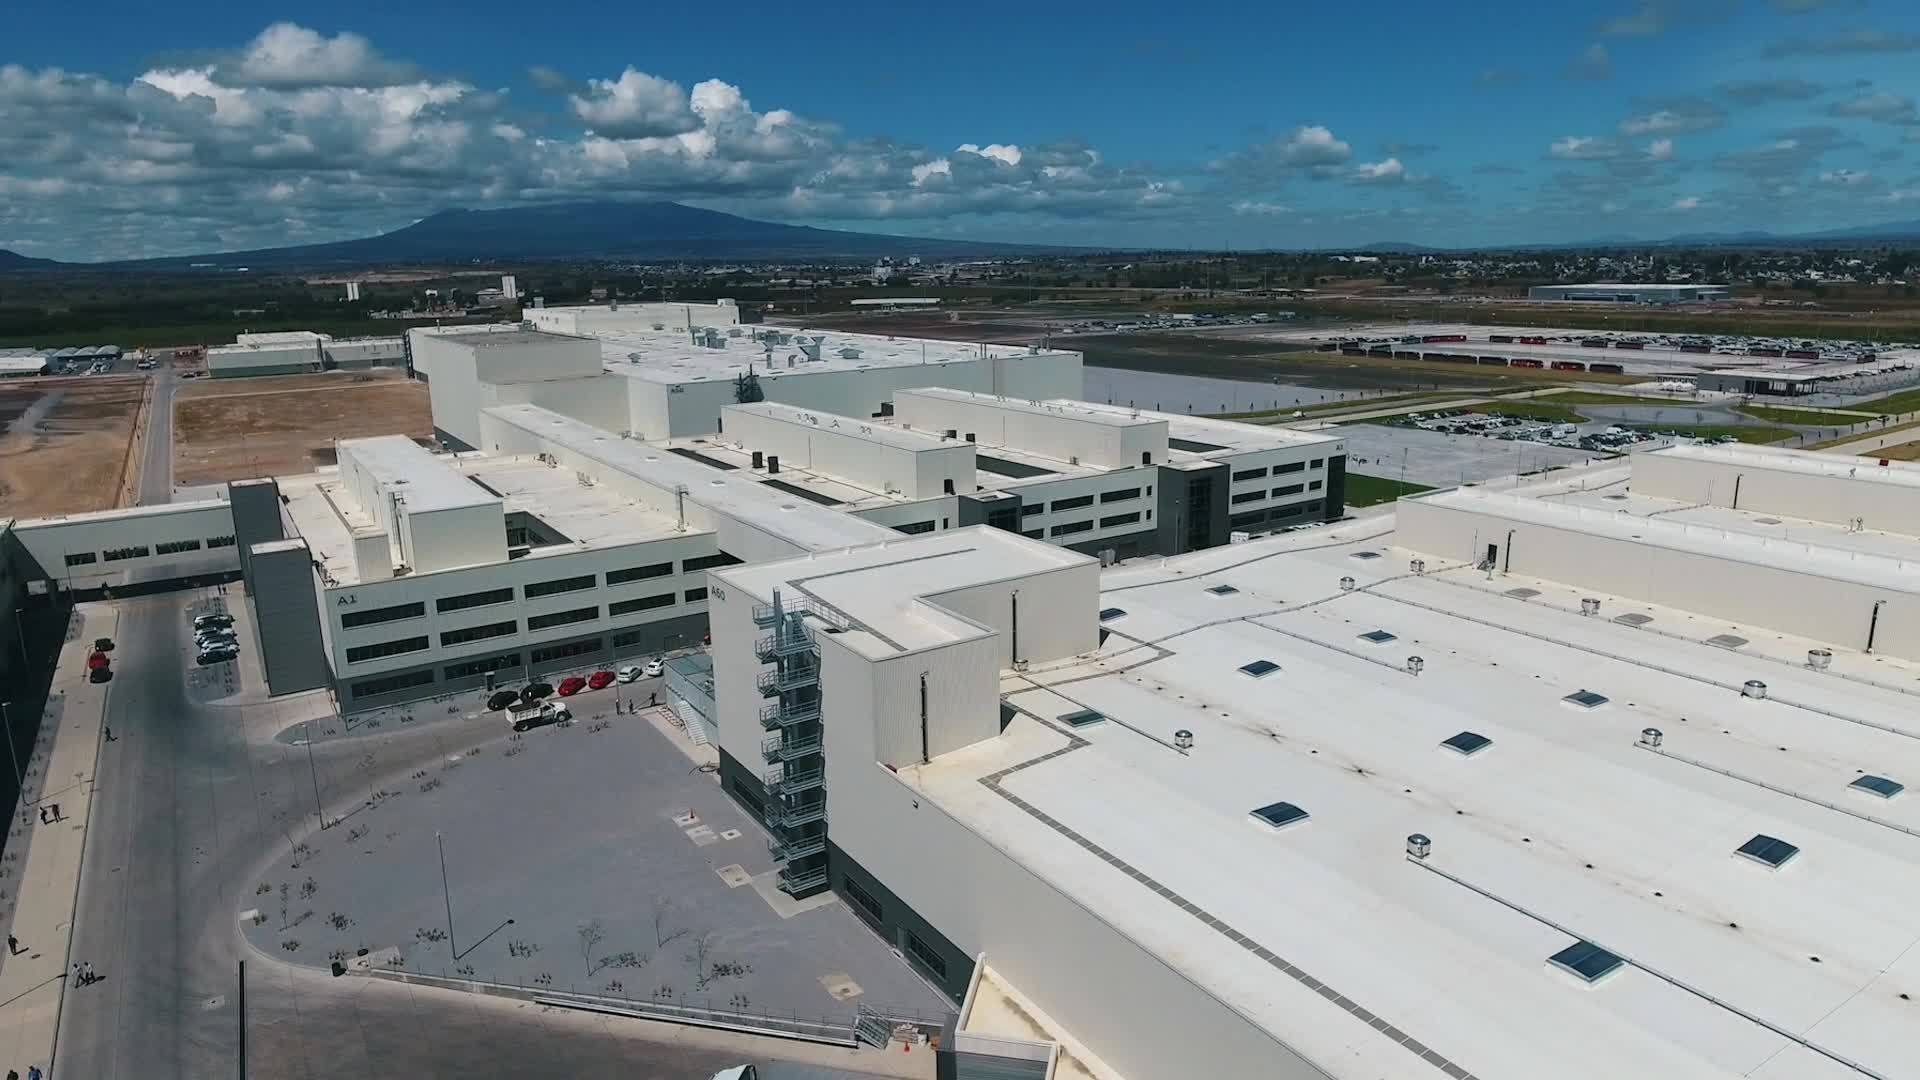 Construction Work Of The New Audi Plant In Mexico Video Audi MediaTV - Audi mexico